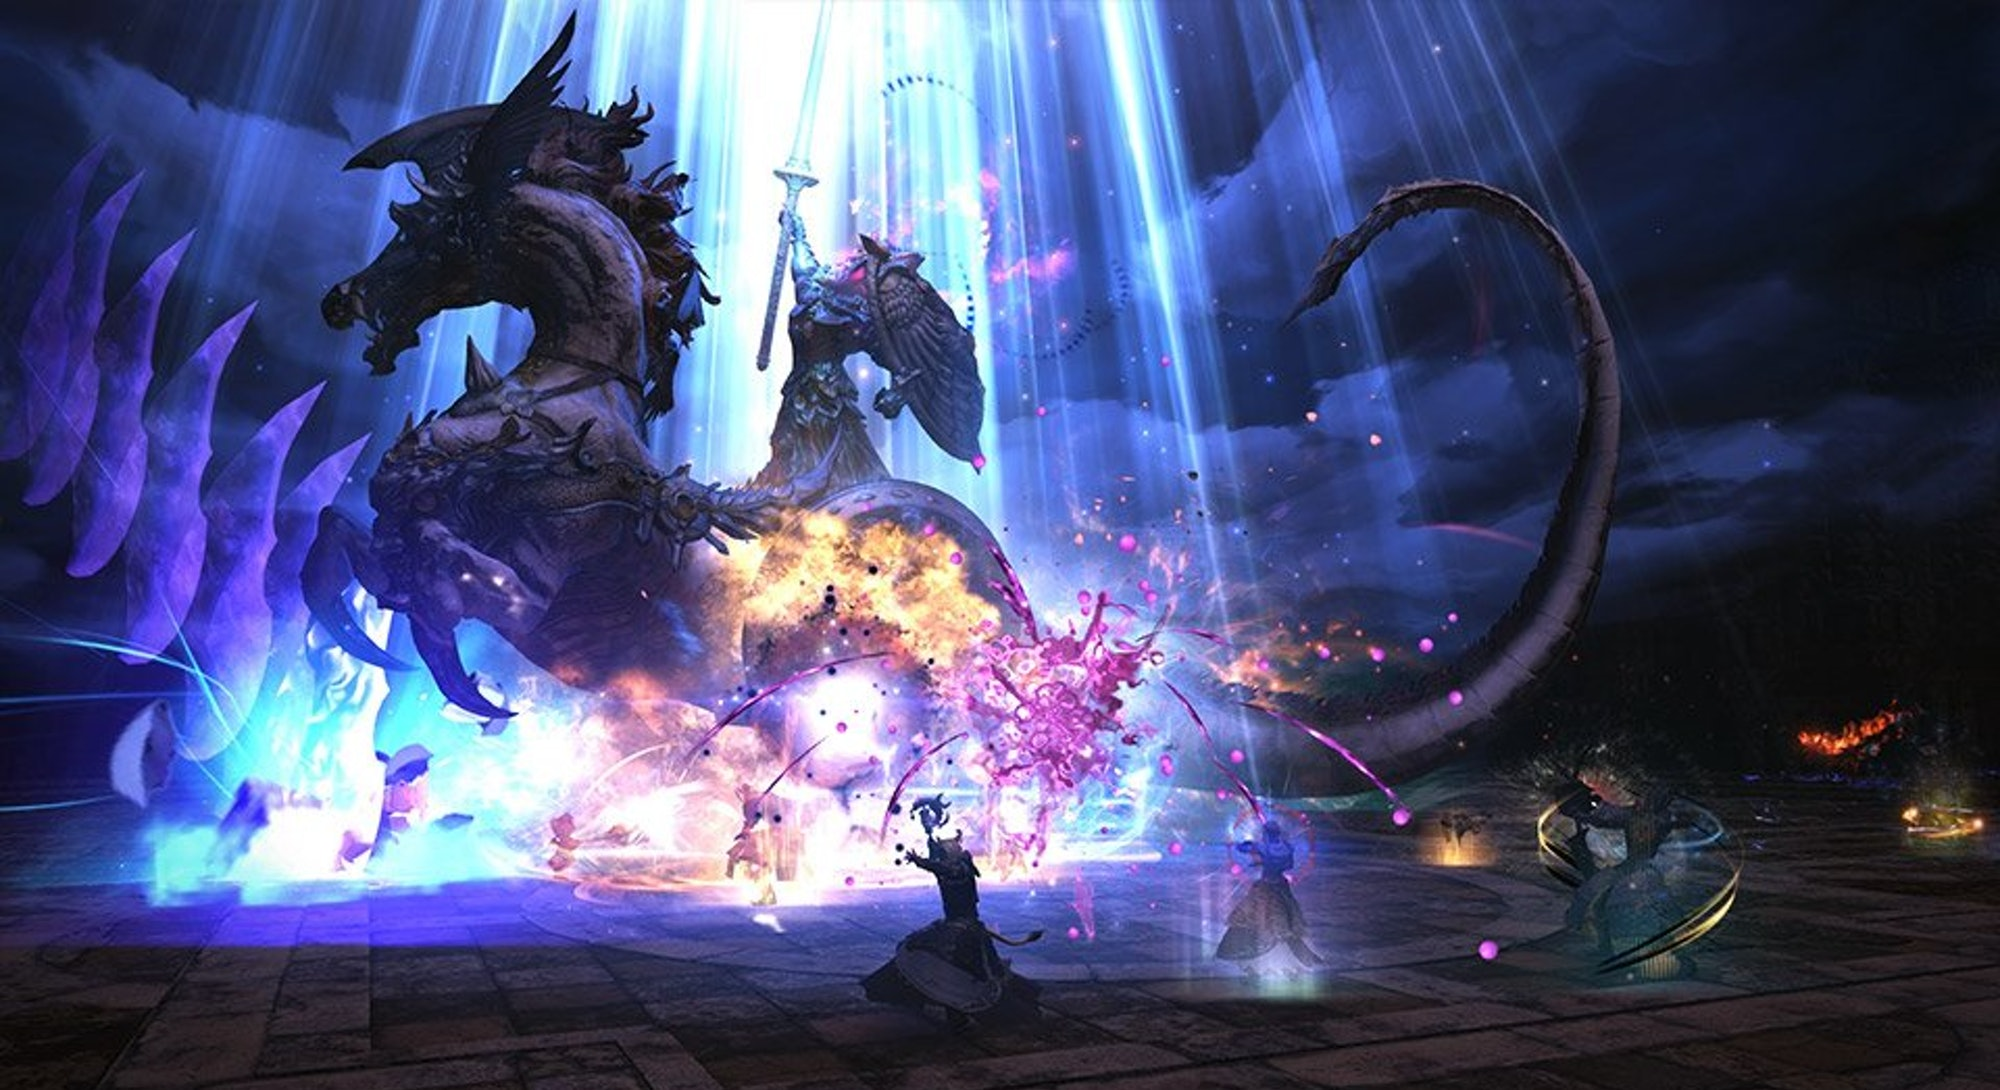 players fighting boss on chariot from Final Fantasy 14